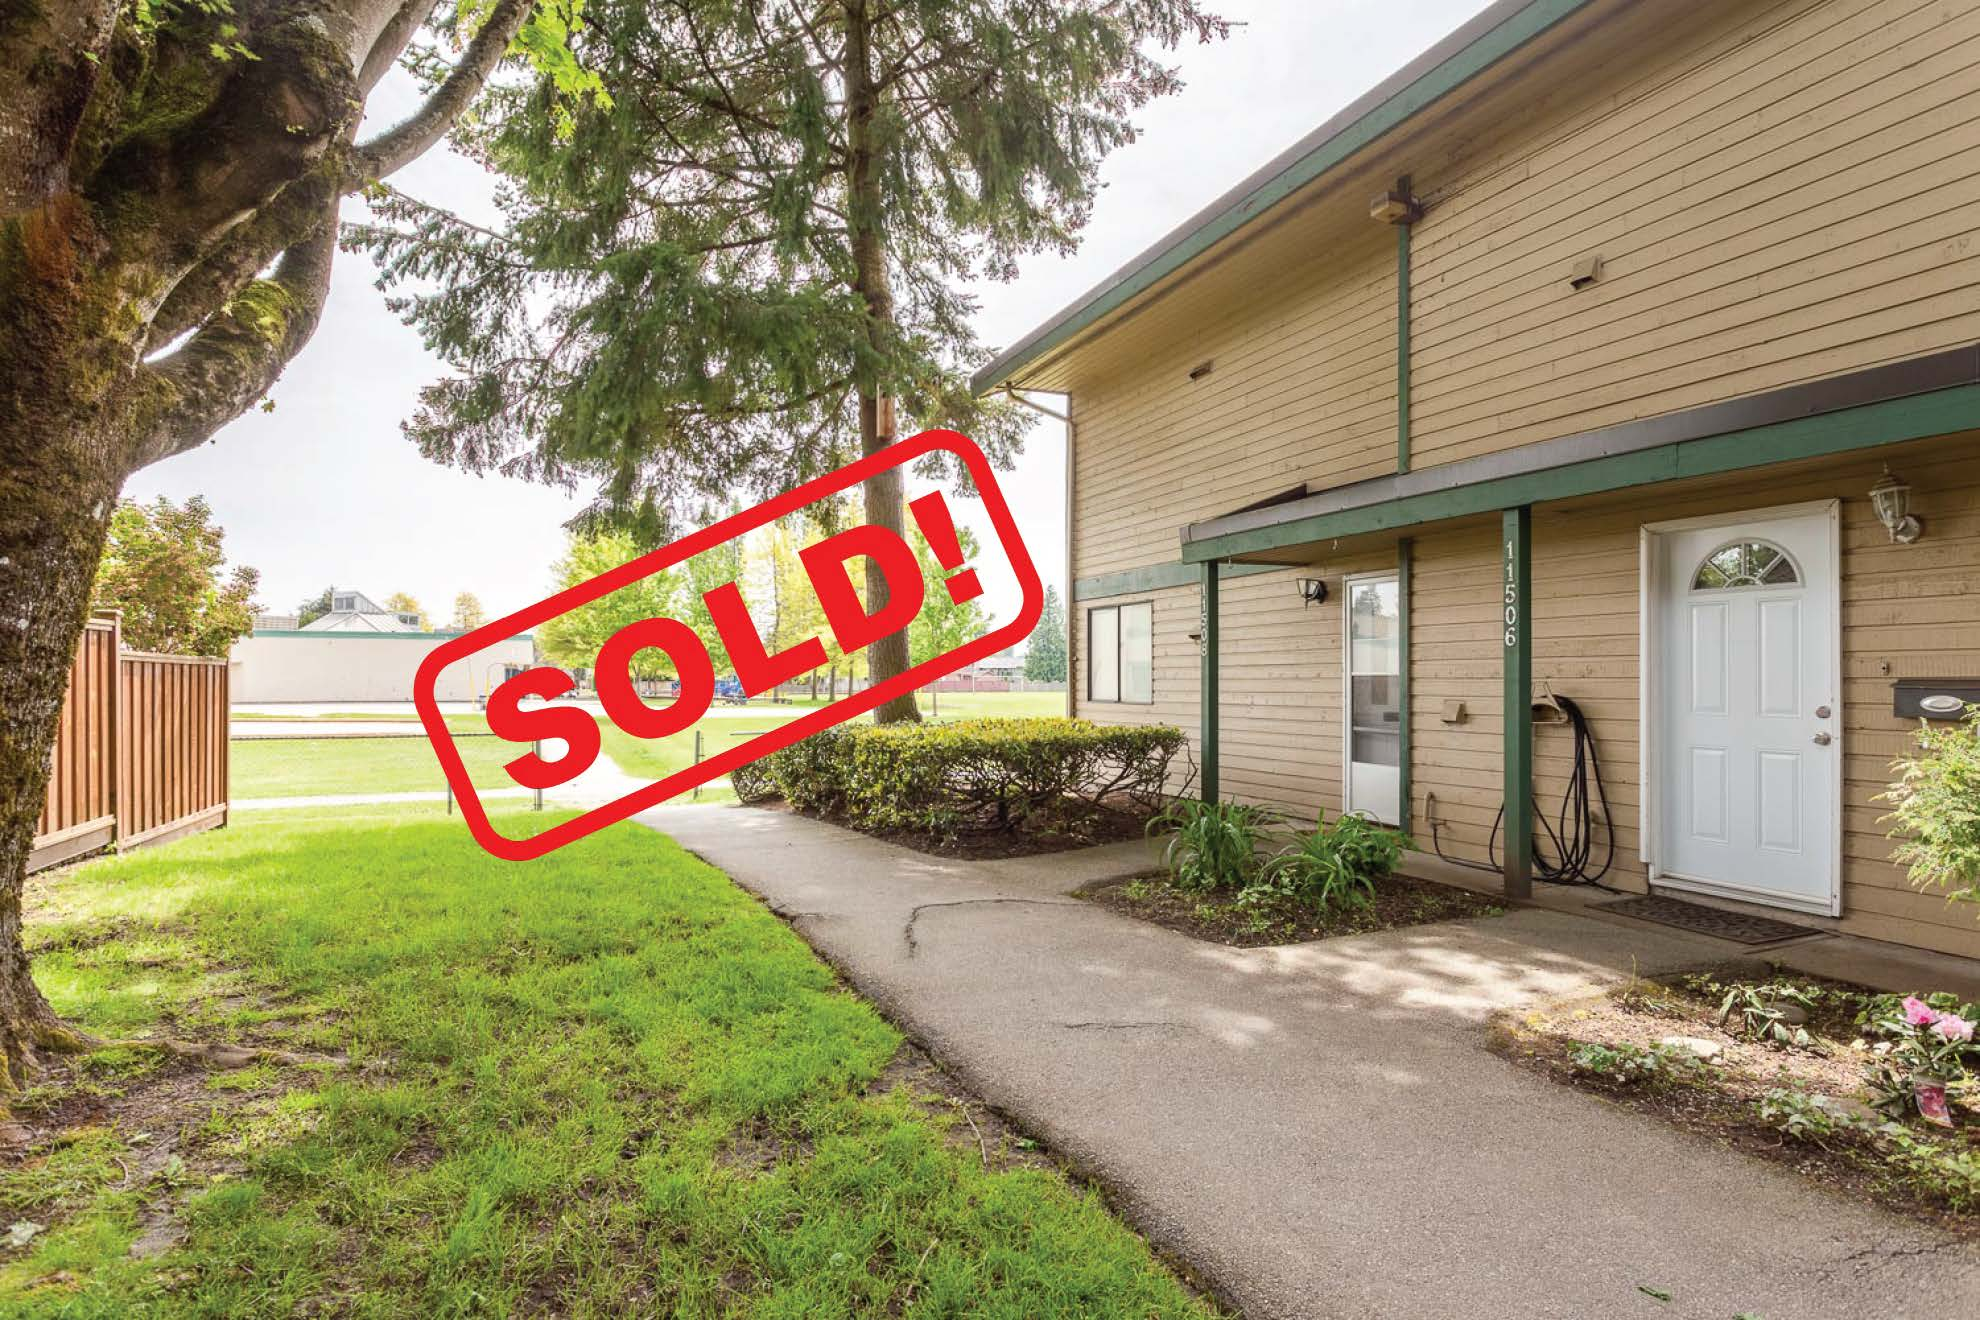 11506 Kingcome Avenue   sold for: $435,000  2 Bed | 1 Bath | 1,060 SF